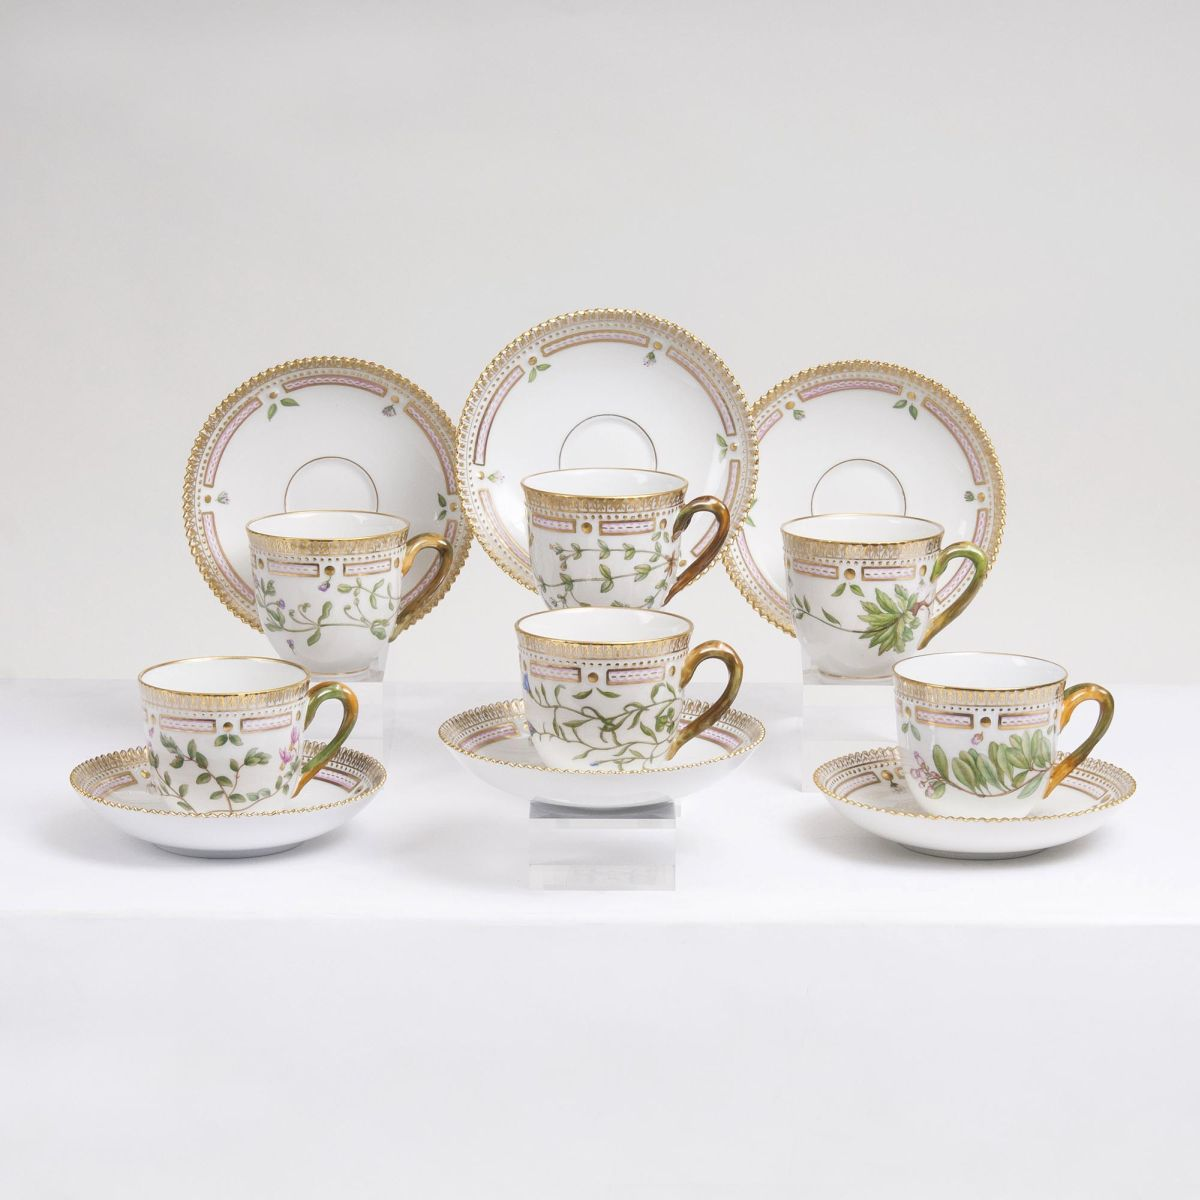 A Set of 6 Flora Danica Coffee Cups with 7 Saucers